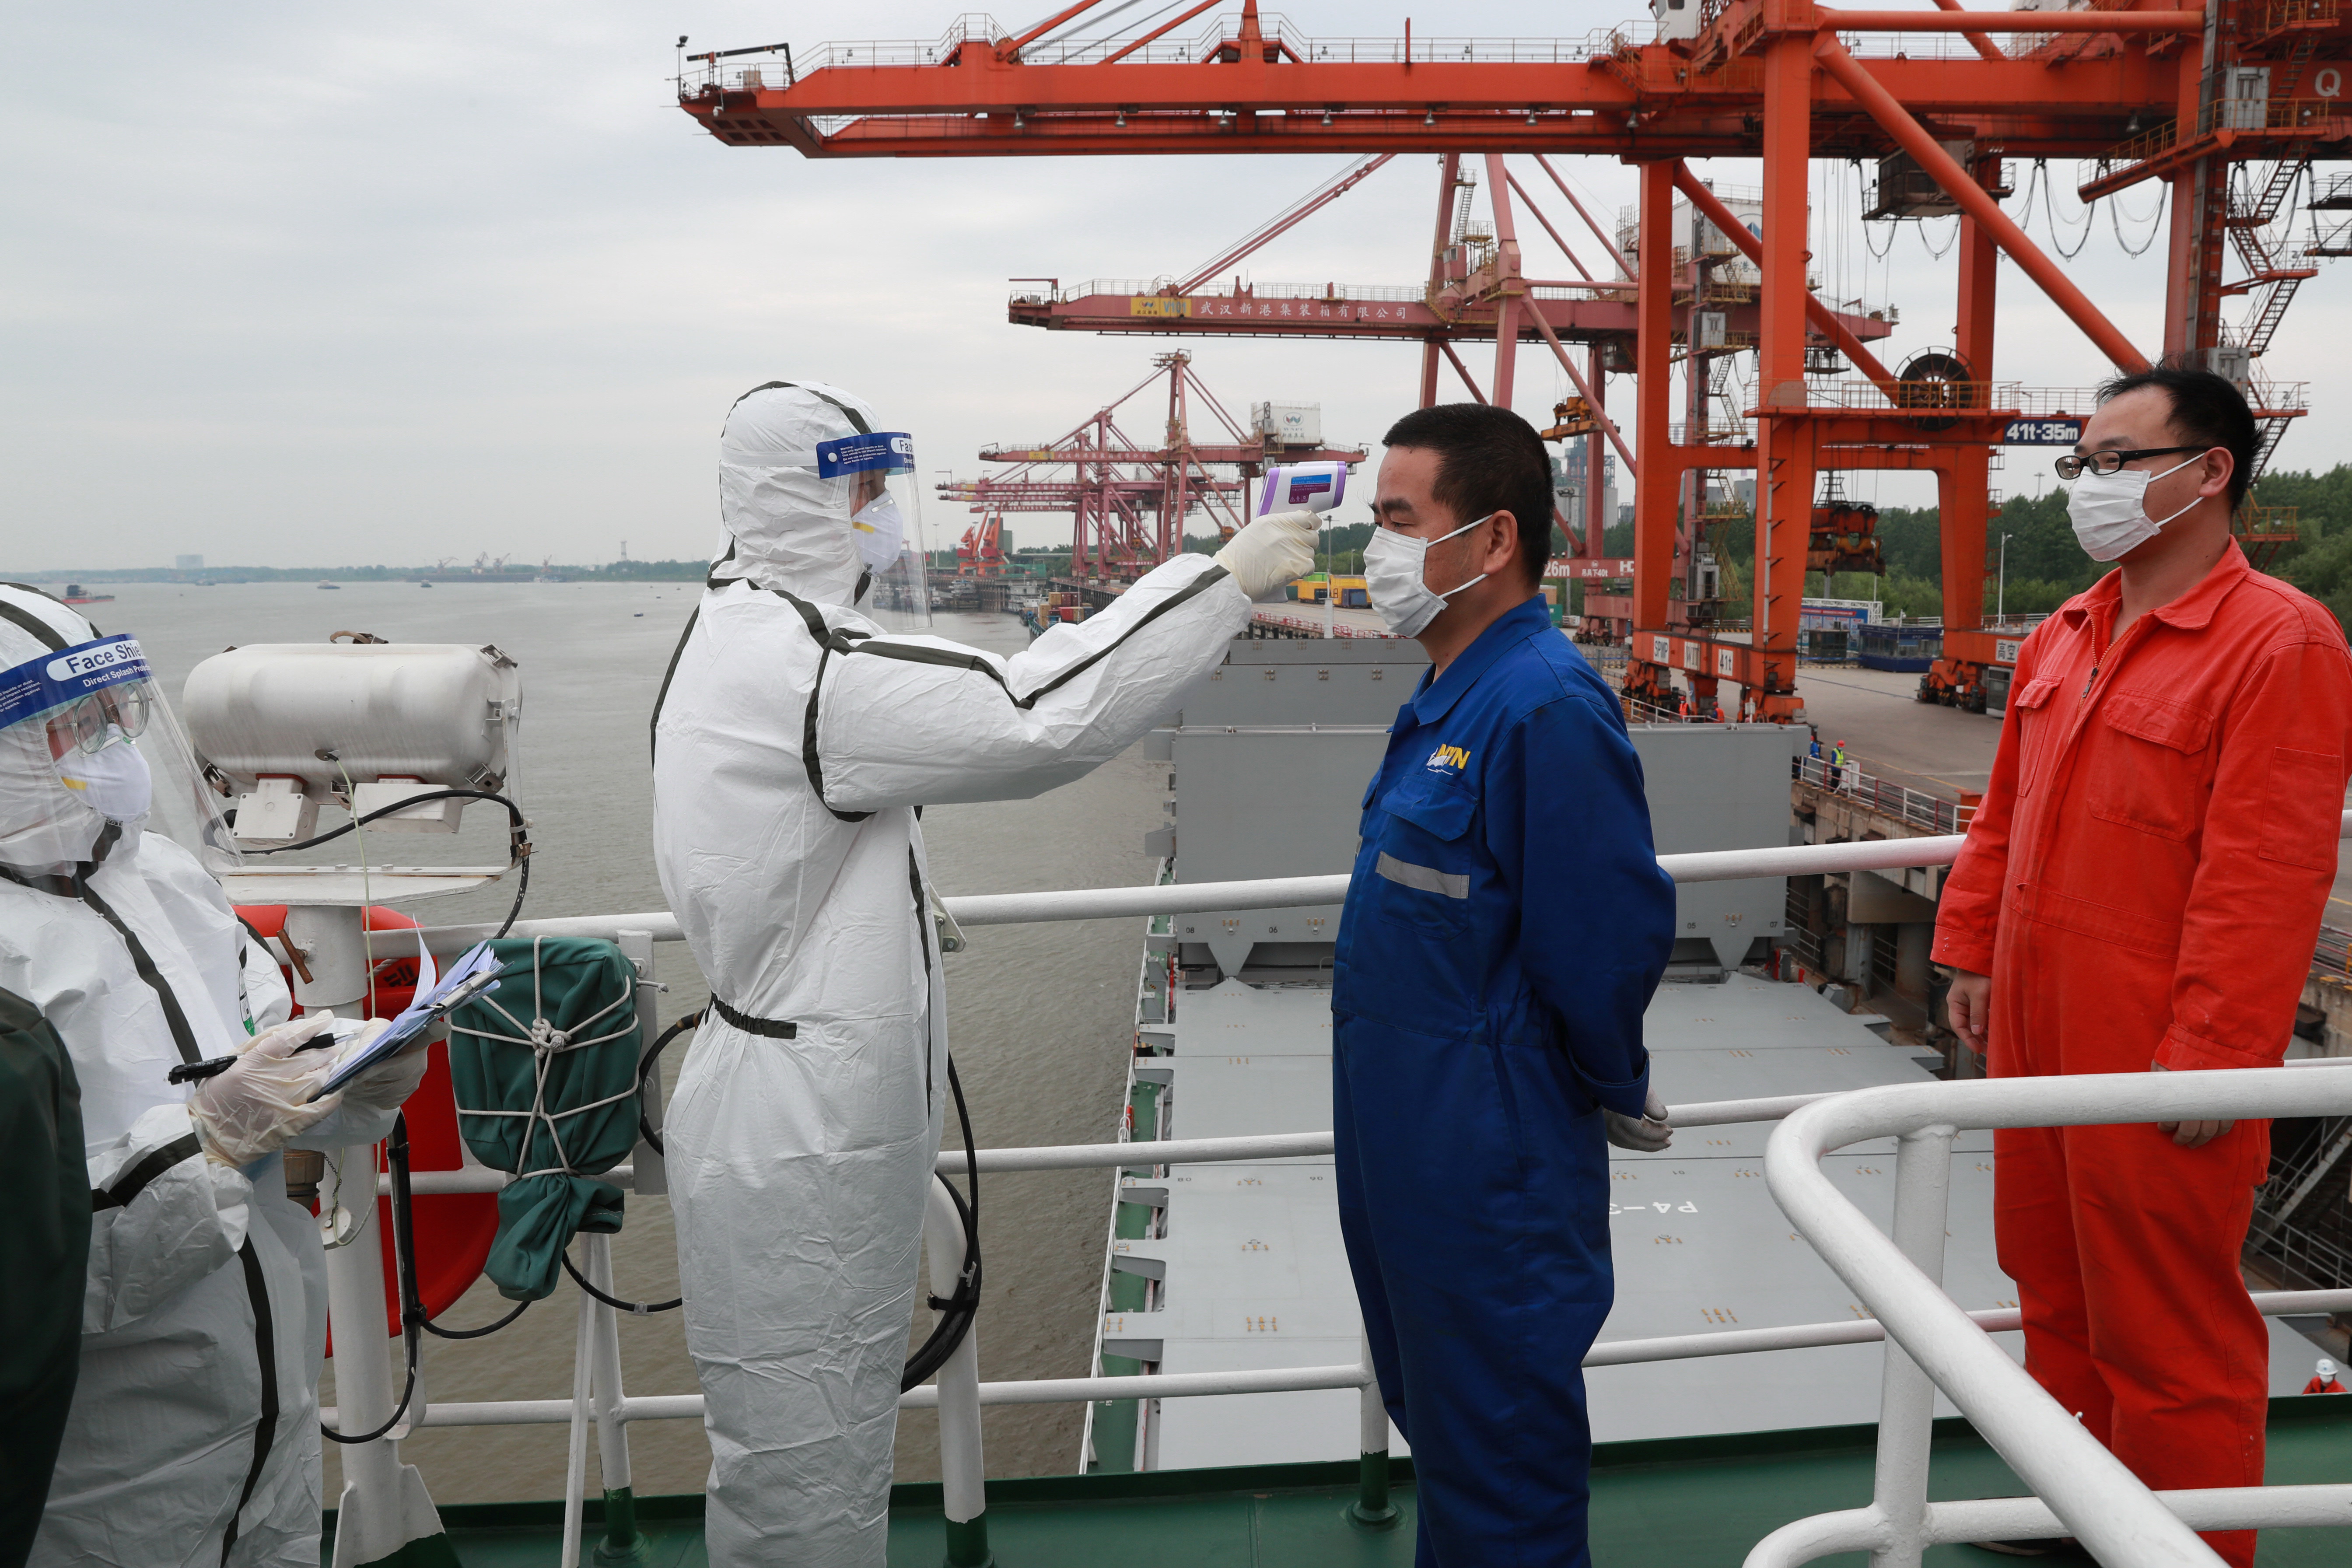 A staff member in protective suit takes body temperature measurement of a crew worker of a cargo ship bound for Japan following the coronavirus disease (COVID-19) outbreak, at a container terminal at a port in Wuhan, Hubei province, China May 9, 2020. Picture taken May 9, 2020. China Daily via REUTERS  ATTENTION EDITORS - THIS IMAGE WAS PROVIDED BY A THIRD PARTY. CHINA OUT. - RC2RMG98X0K3